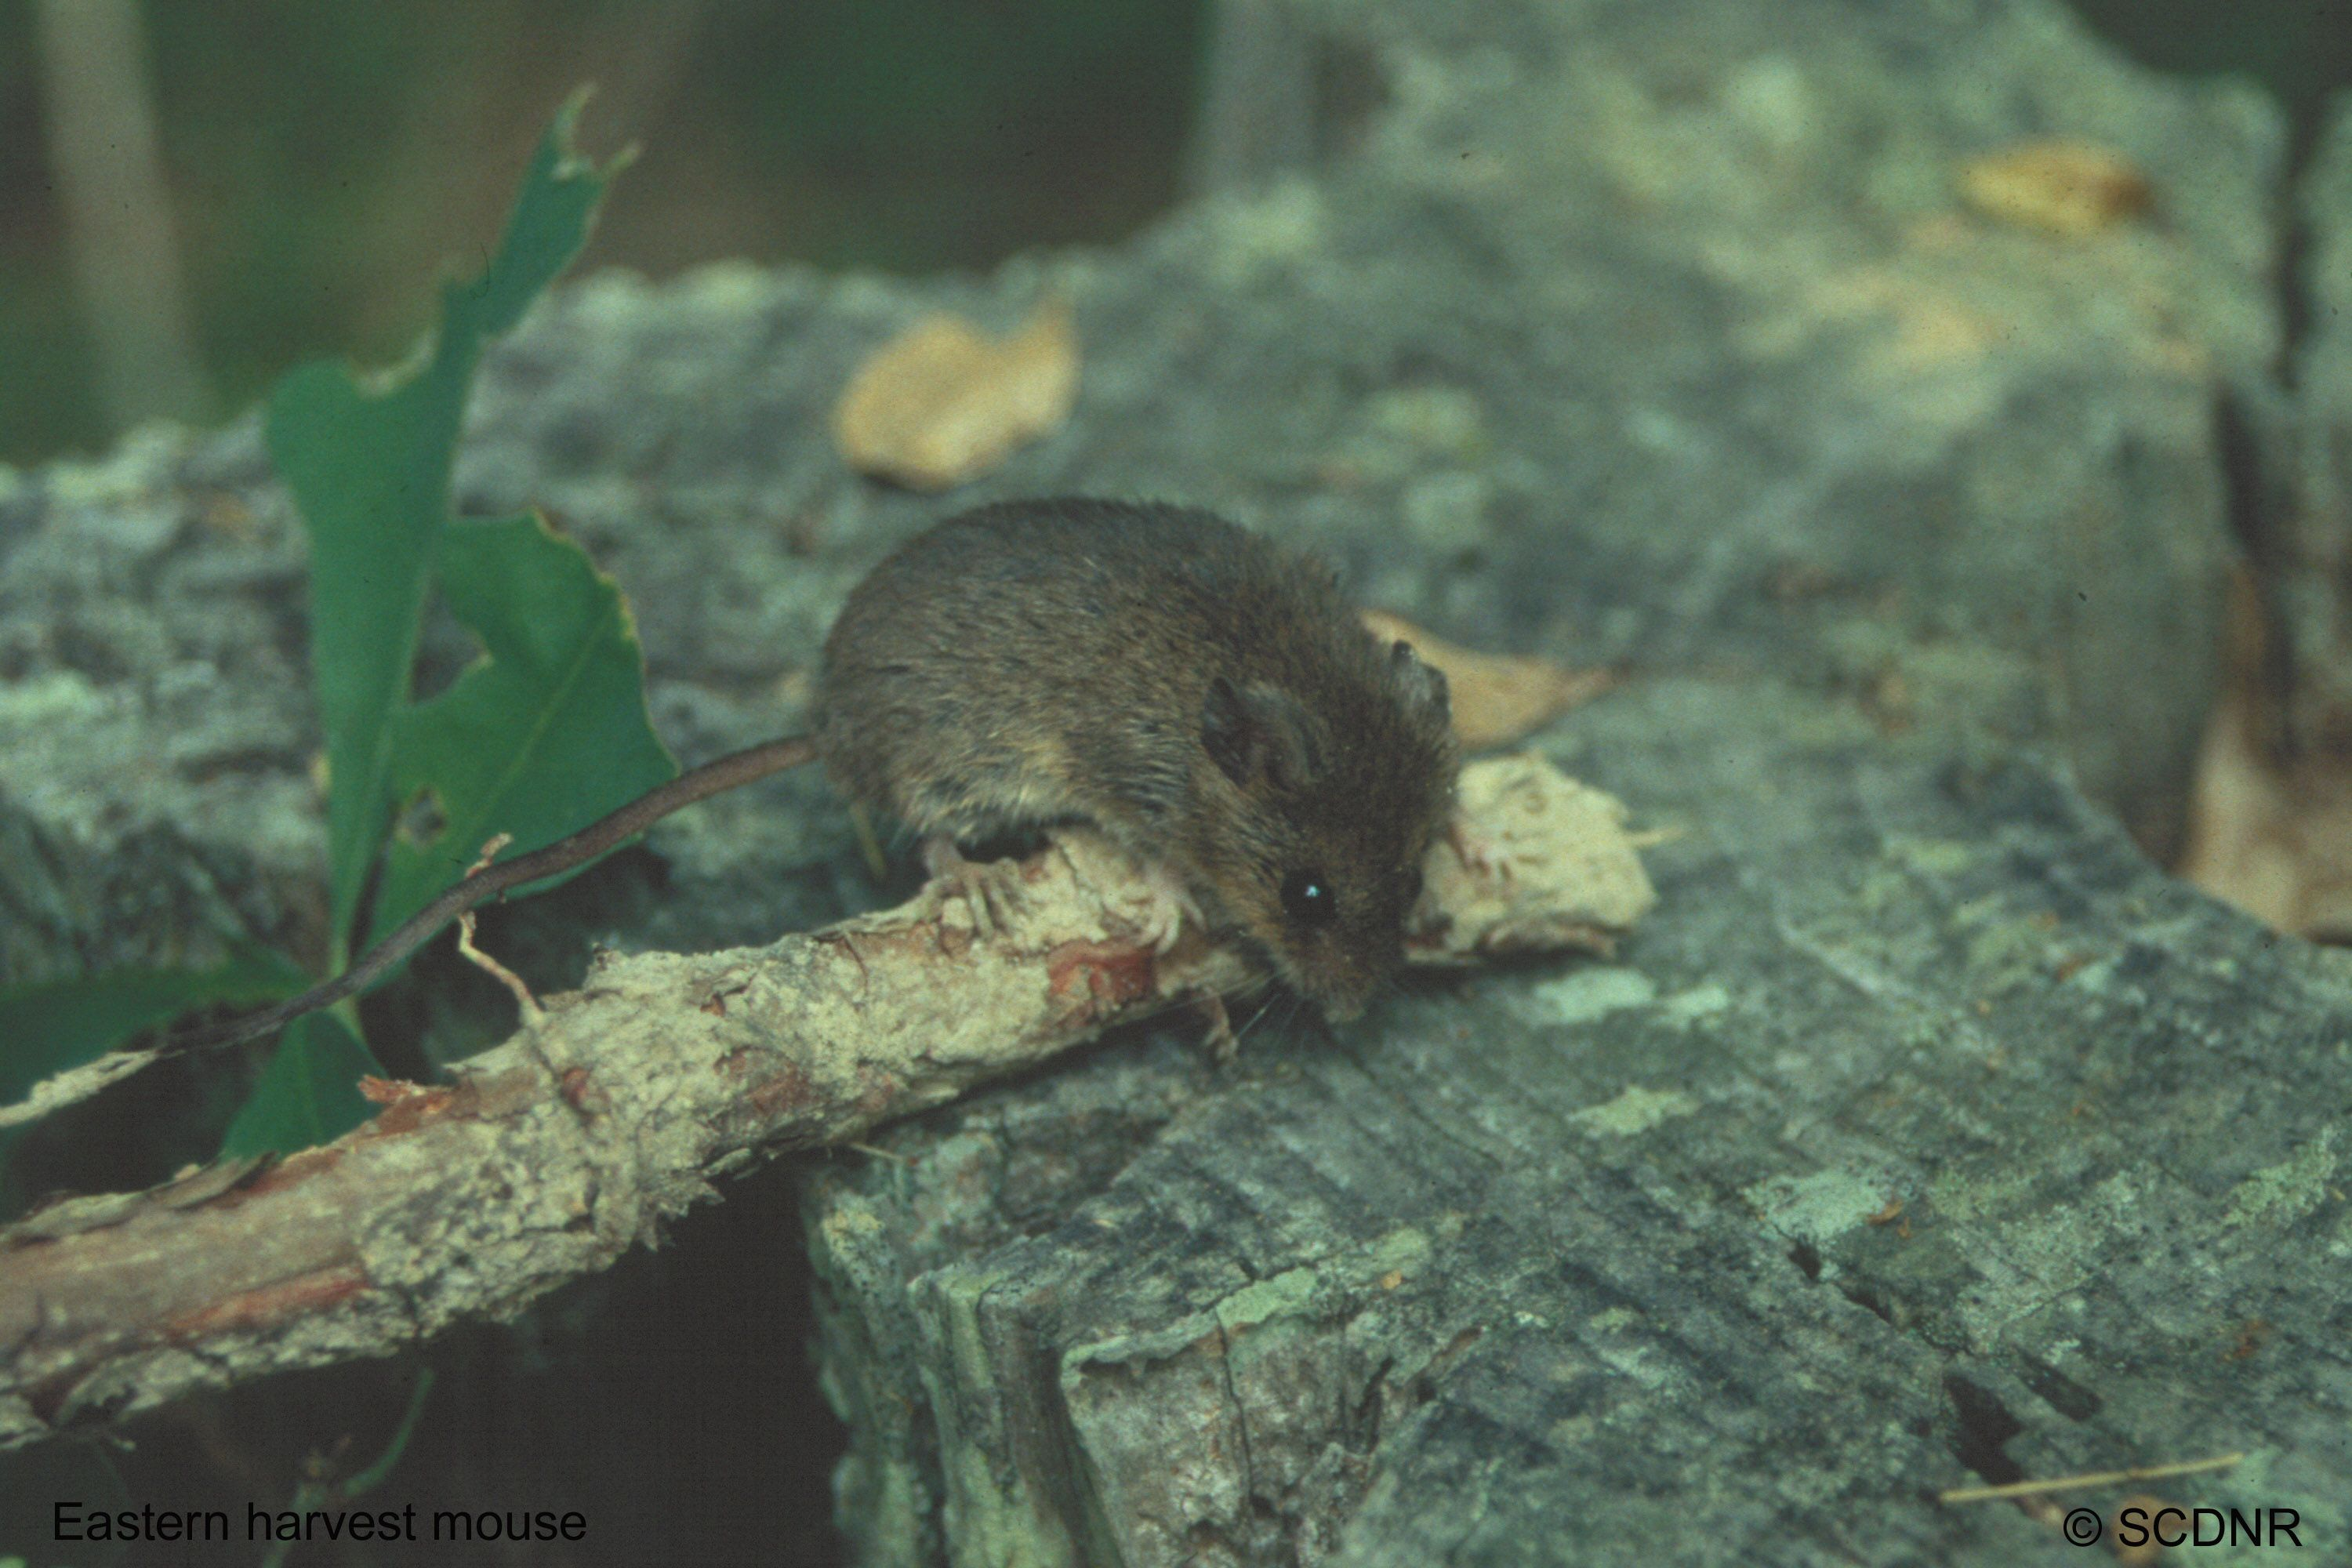 Here is a macro of an eastern harvest mouse. Thank you Clemson University Department of Forestry http://www.clemson.edu/cafls/departments/forestry/cef/cef_mammals.html